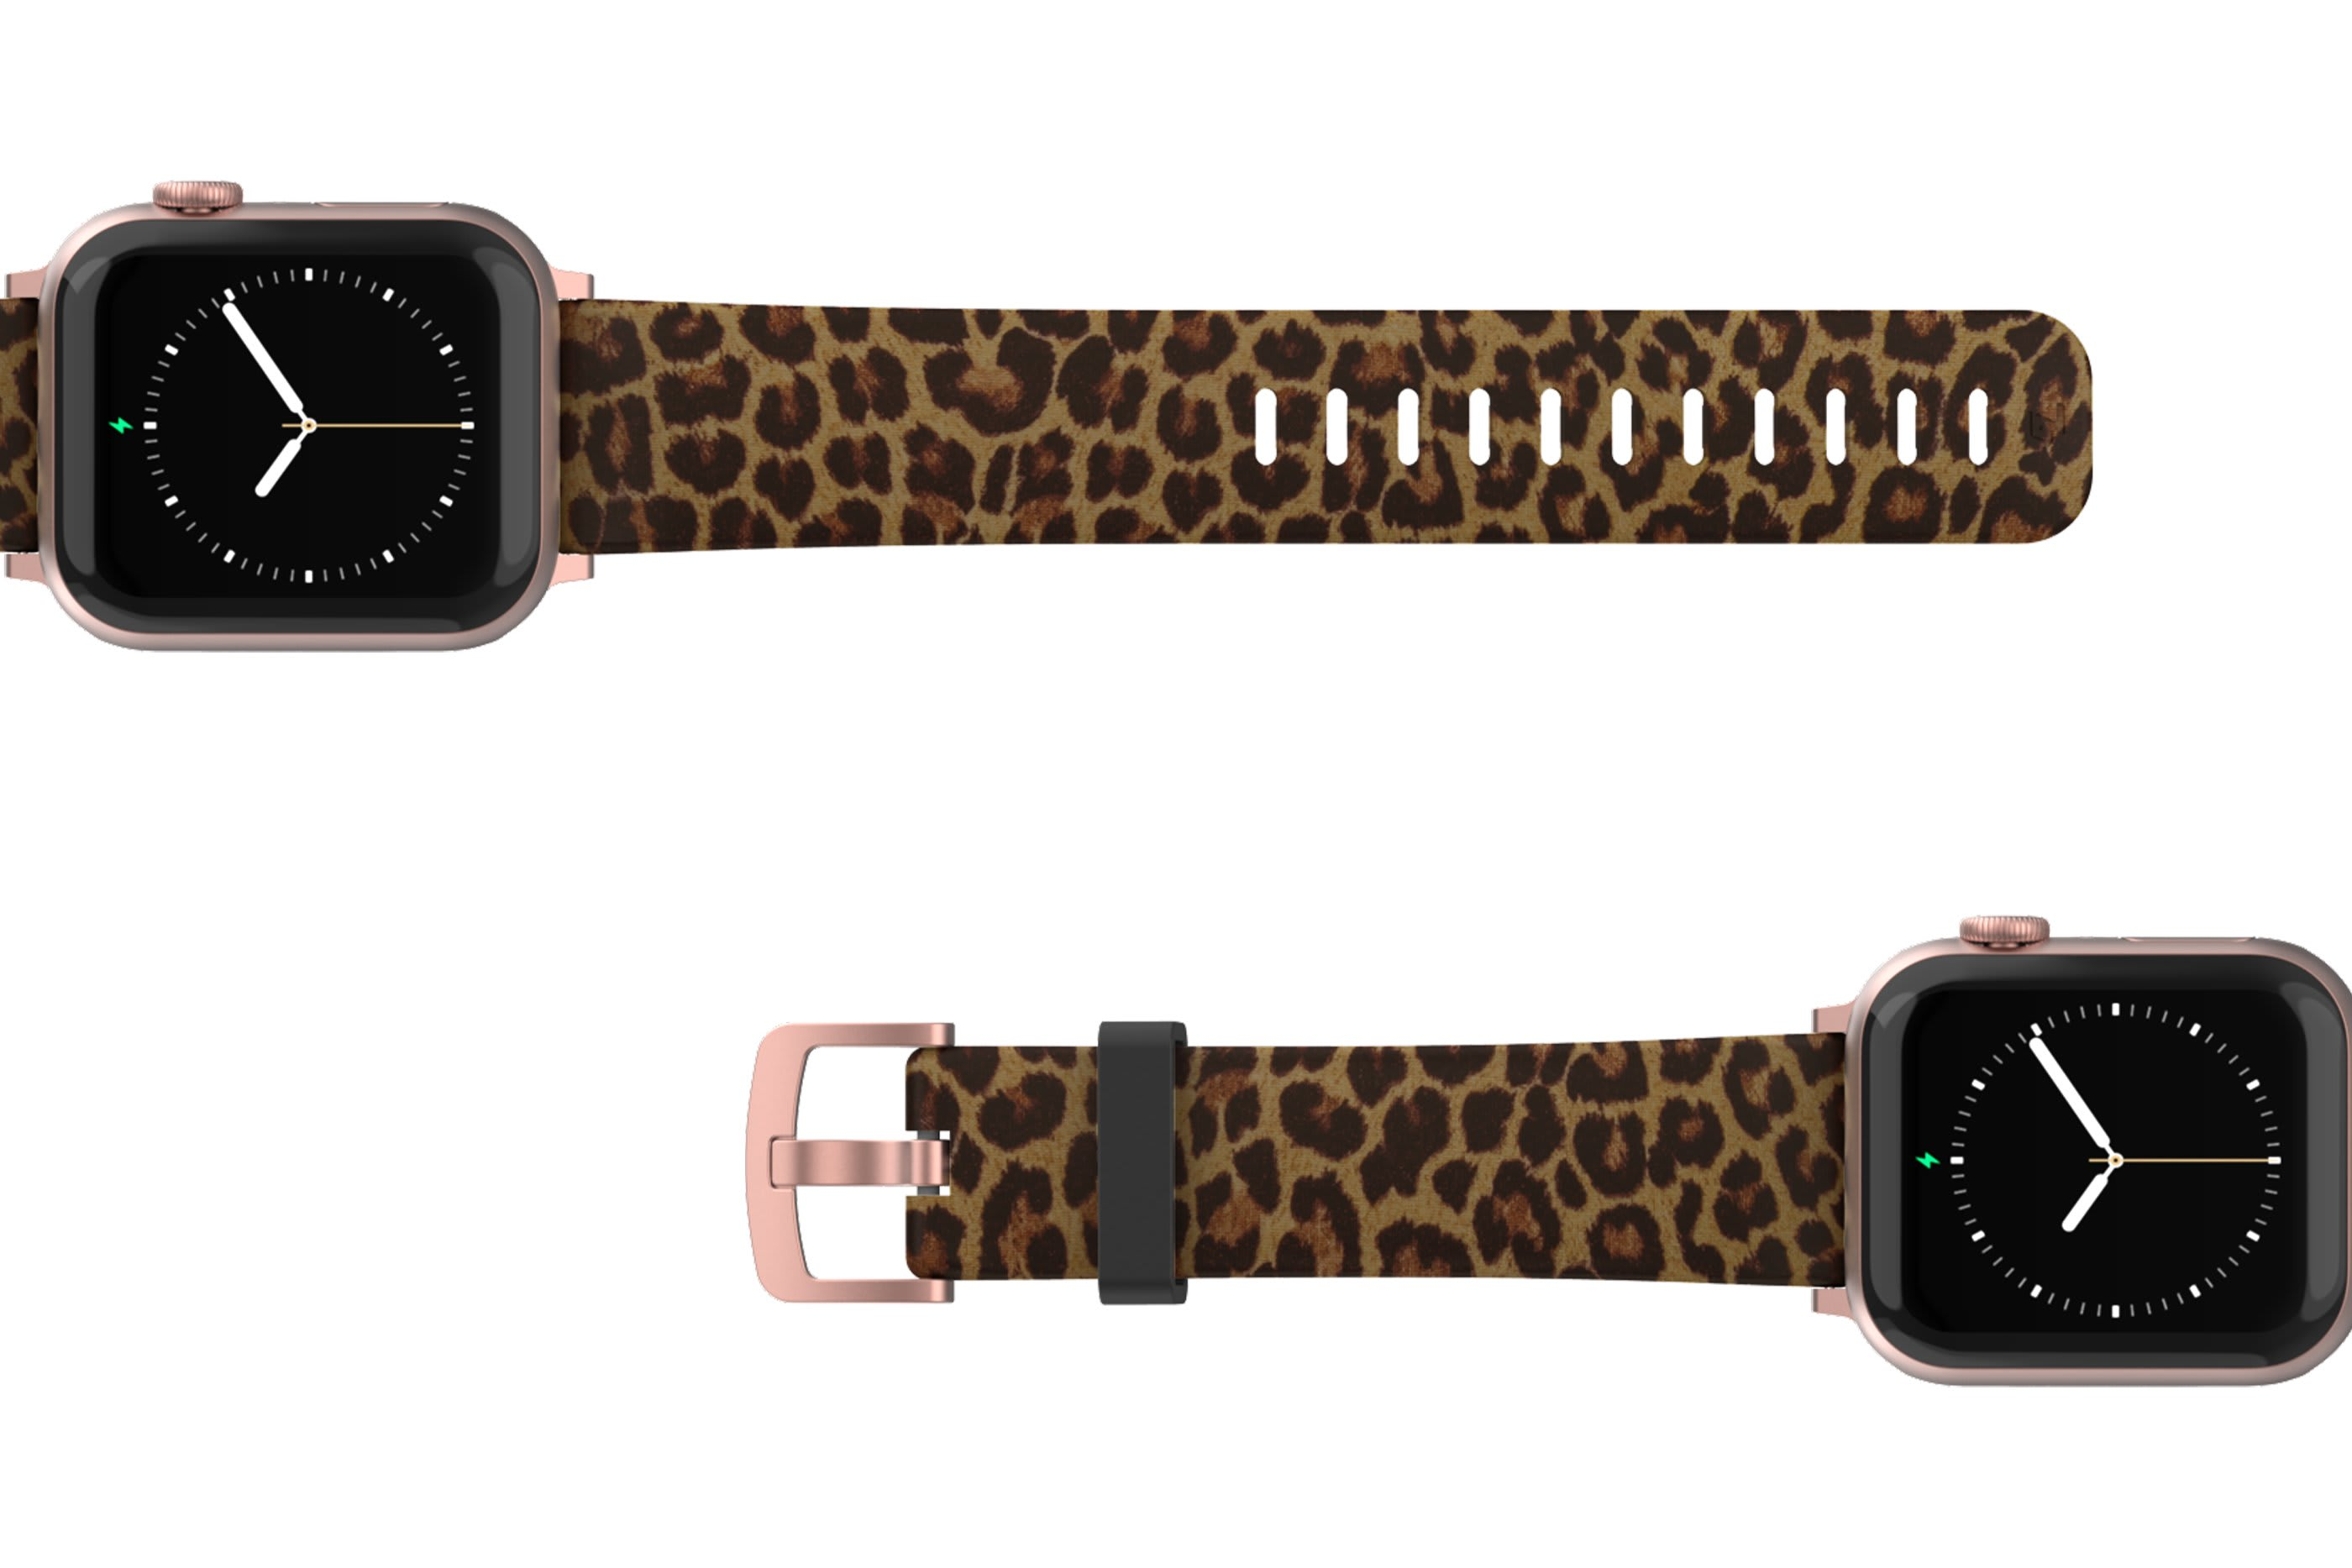 Leopard Apple Watch Band with rose gold hardware viewed top down